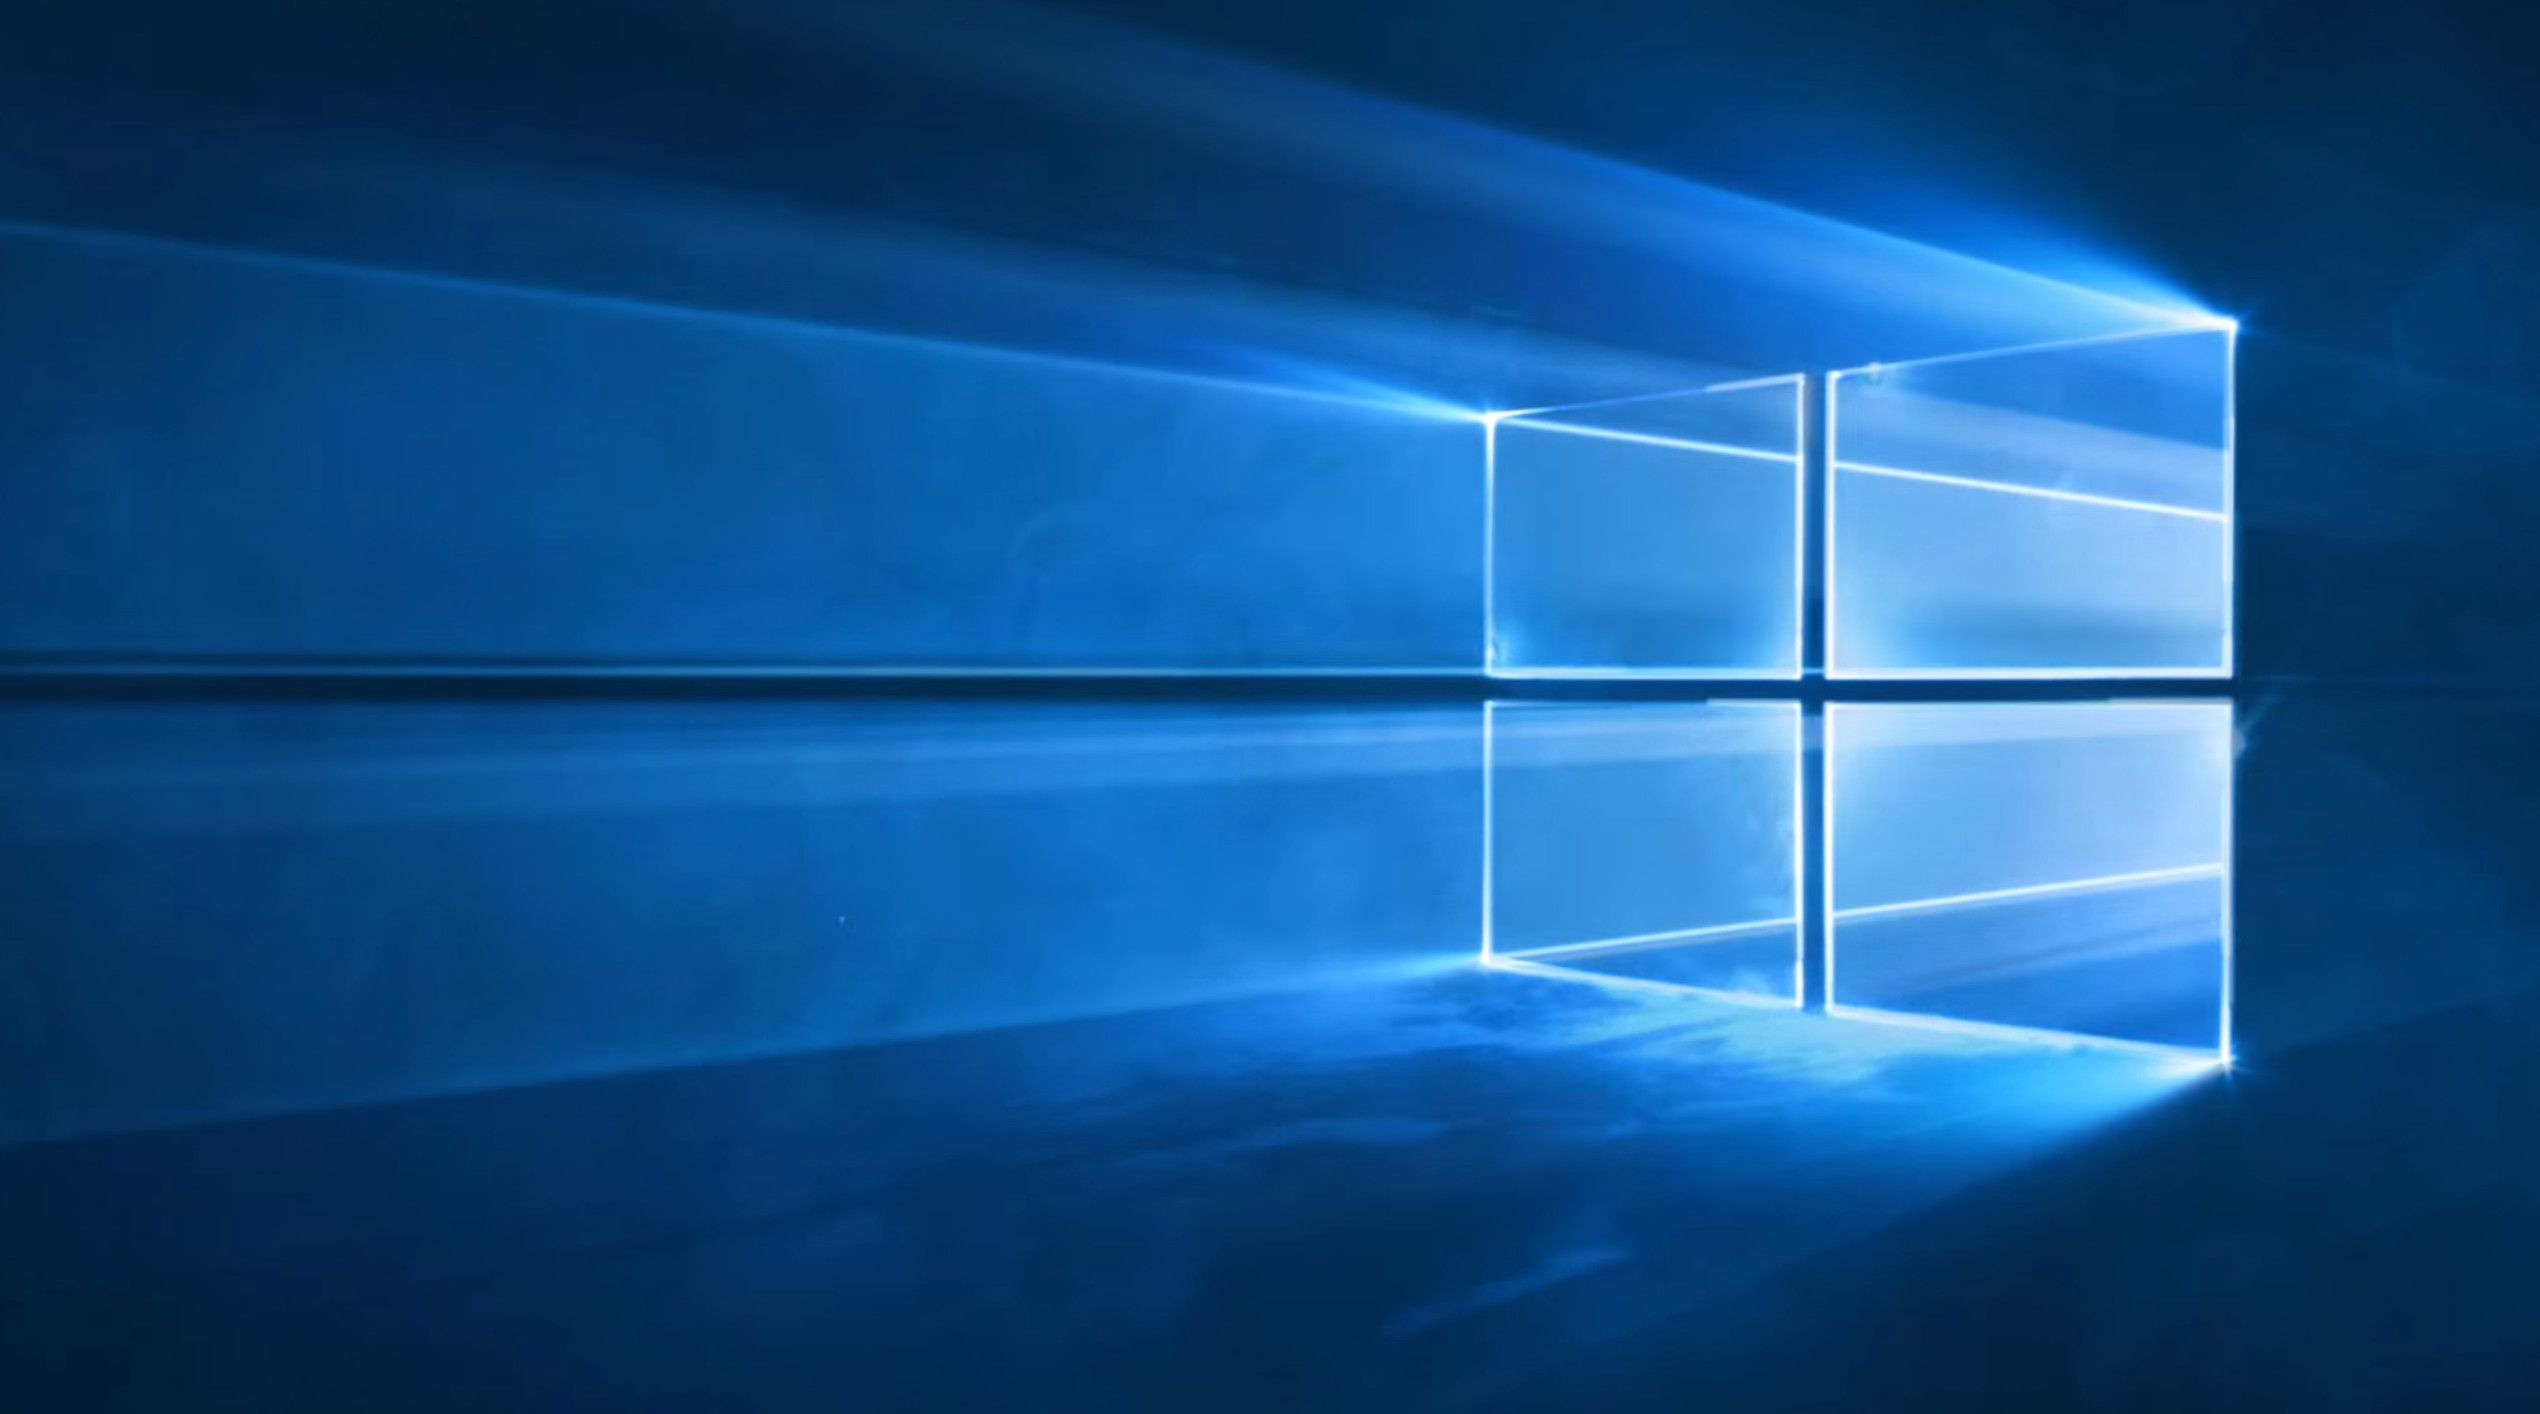 Reasons Why Live Wallpaper Windows 10 Is Getting More Popular In The Past Decade Live Wallpaper Wi Live Wallpapers Wallpaper Windows 10 Live Wallpaper For Pc